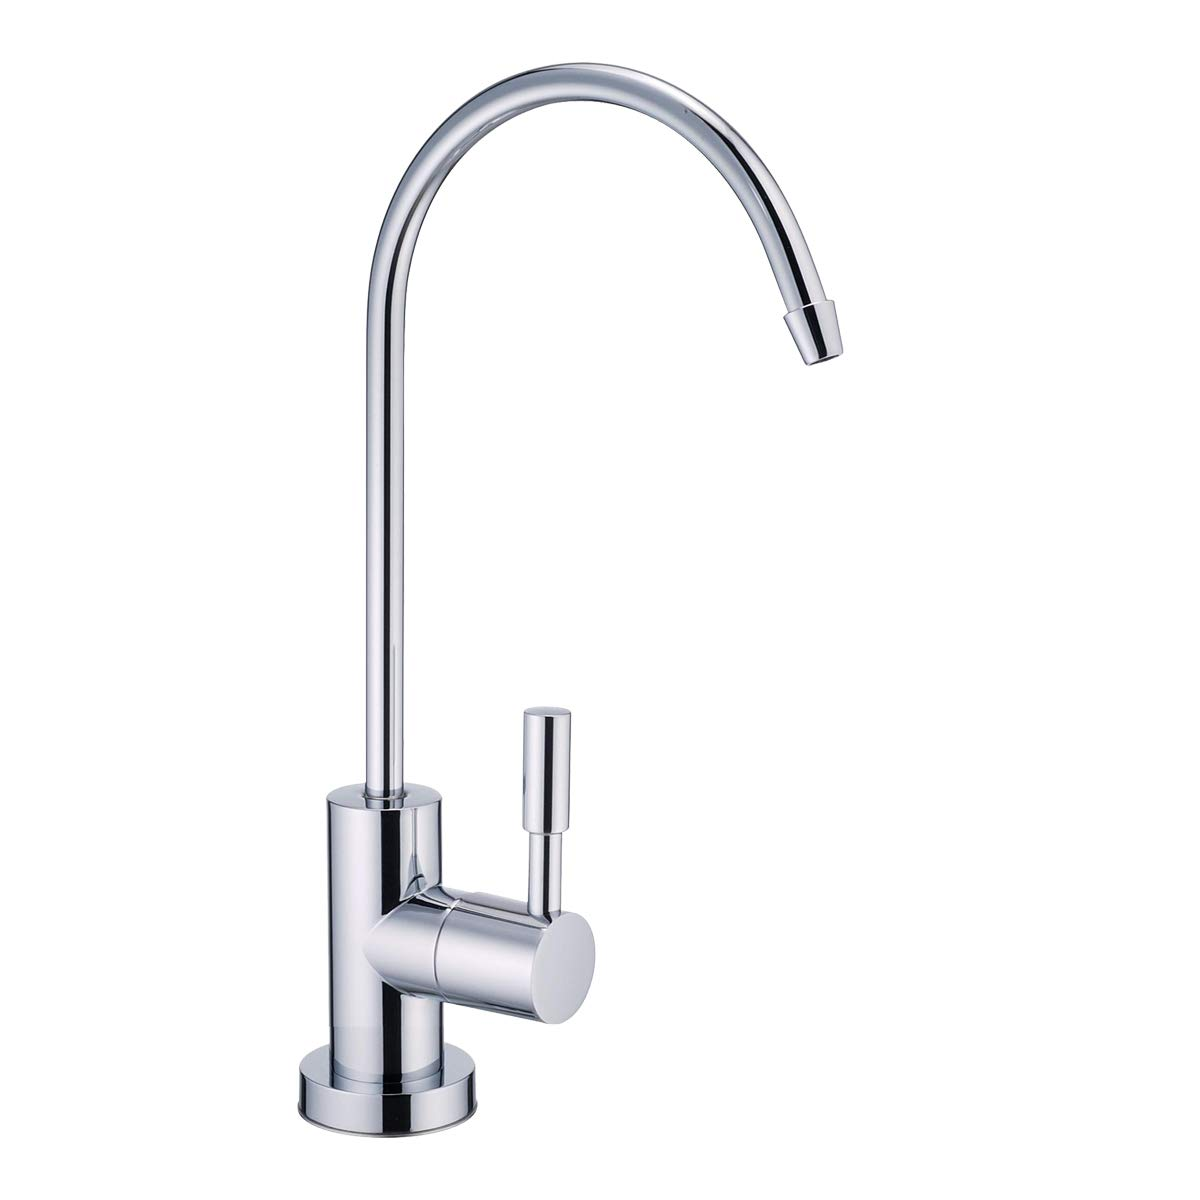 NSF Certification Lead-Free Water Filtration Reverse Osmosis Faucet Advanced RO Tap for Drinking, Kitchen Sink Cleaning | Safe, Healthier (Chrome) (Chrome) by Water Filter Tec